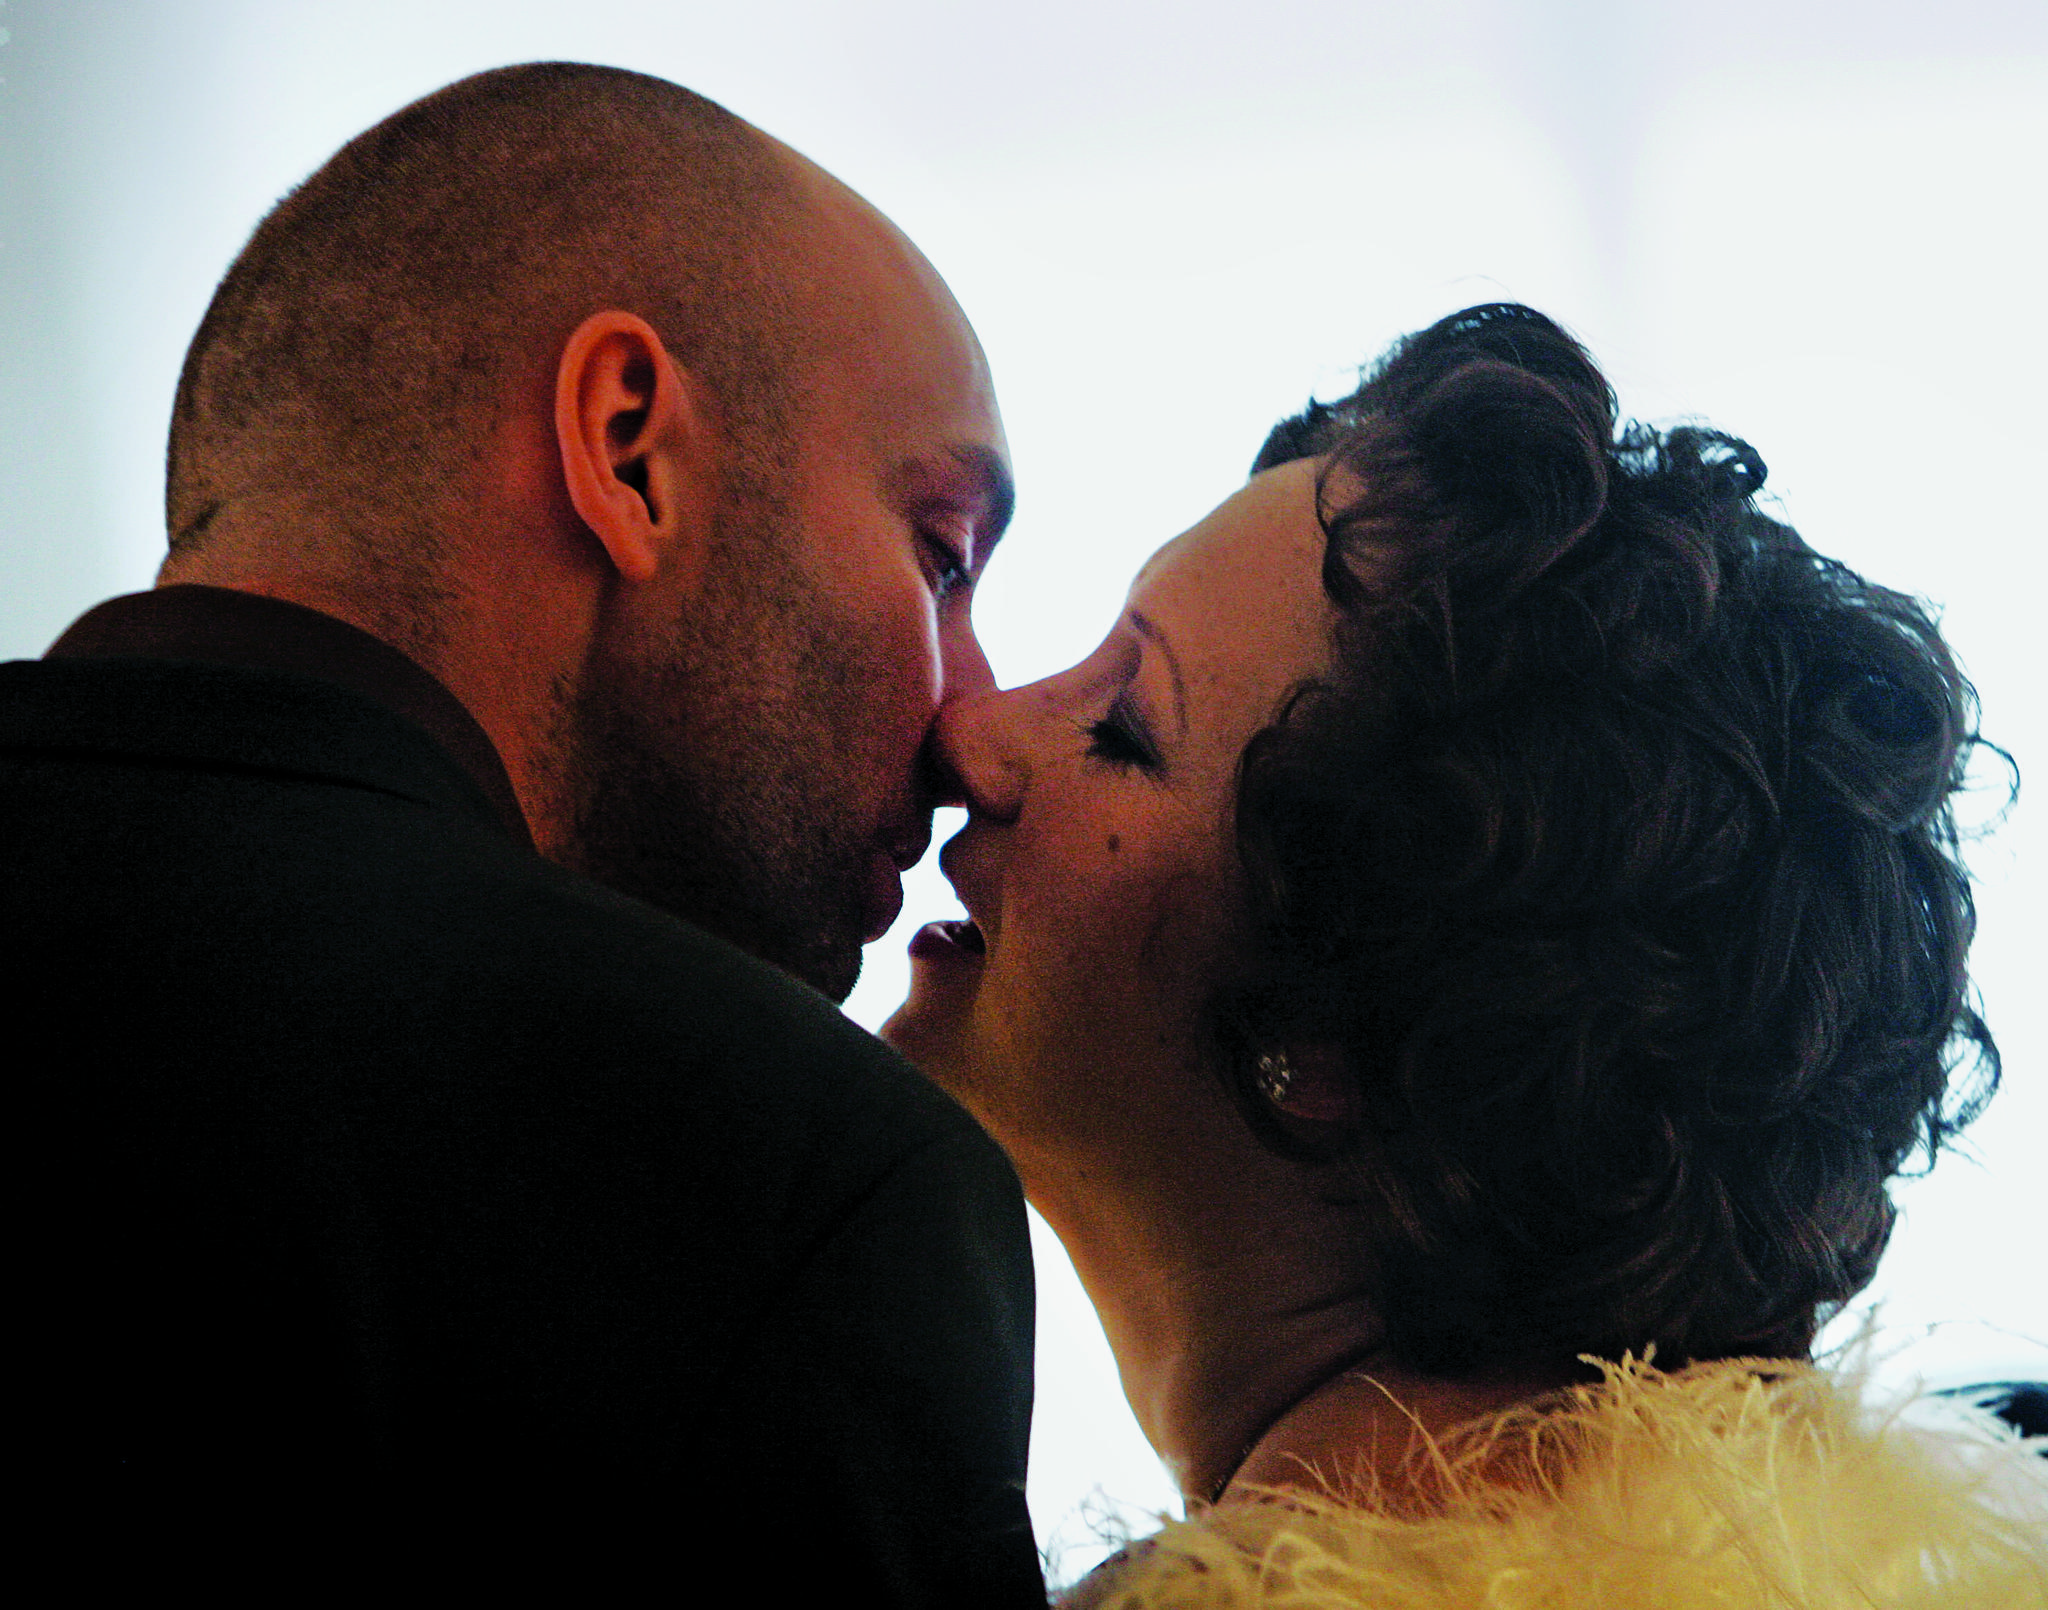 David Stanley and Rebekah Robbins, both of Sheffield, England, kiss after being married at the Empire State Building in New York, on February 14, 2007. Robbins met Stanley on the internet after she started her fight with breast cancer, for which she continues treatment.